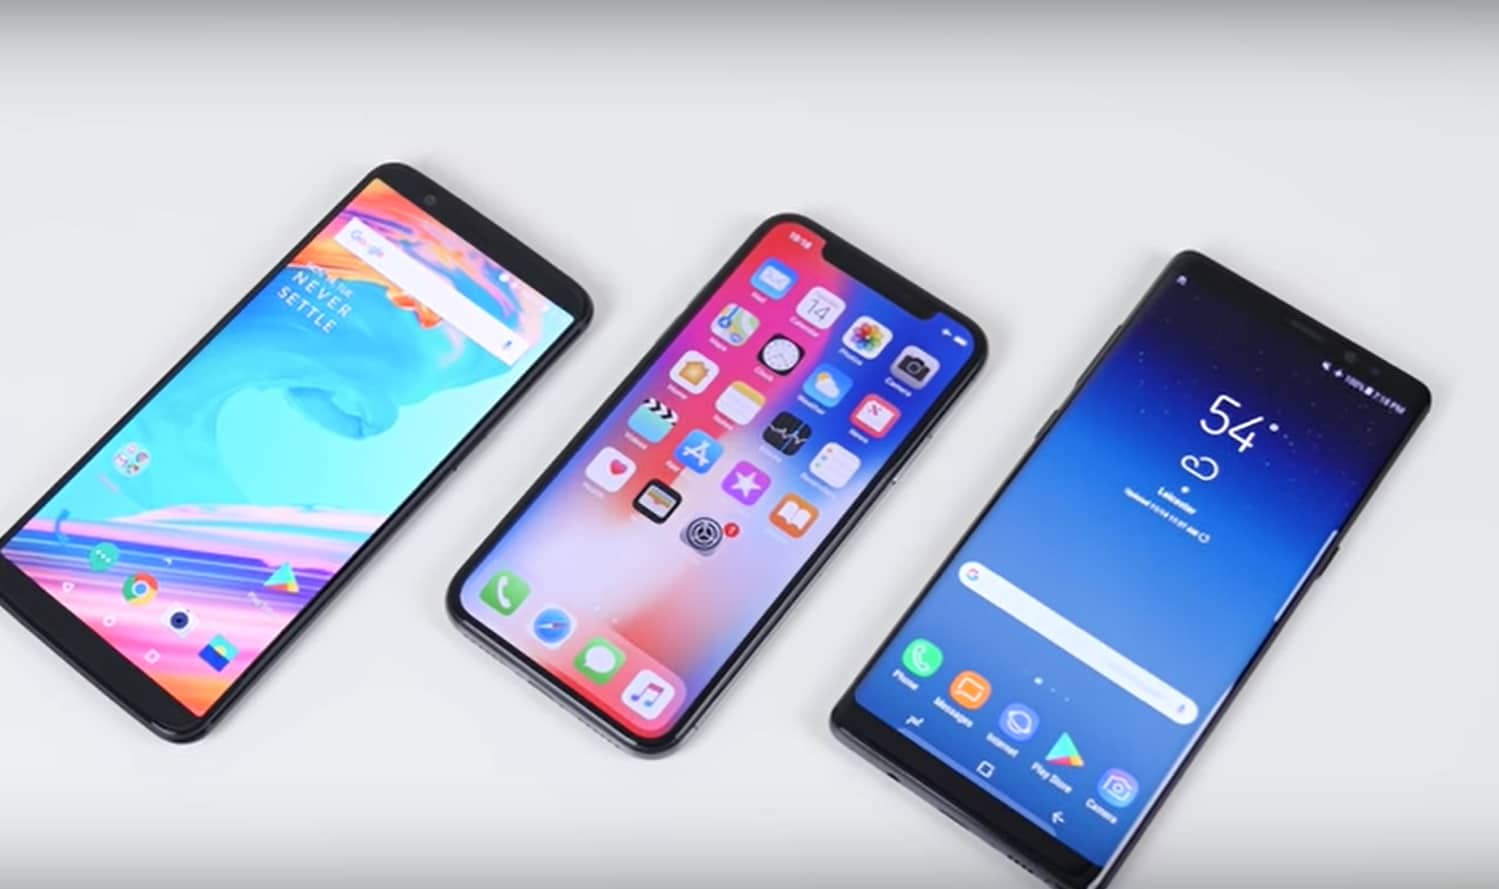 oneplus 5t iphone x galaxy note 8 recharge rapide comparatif